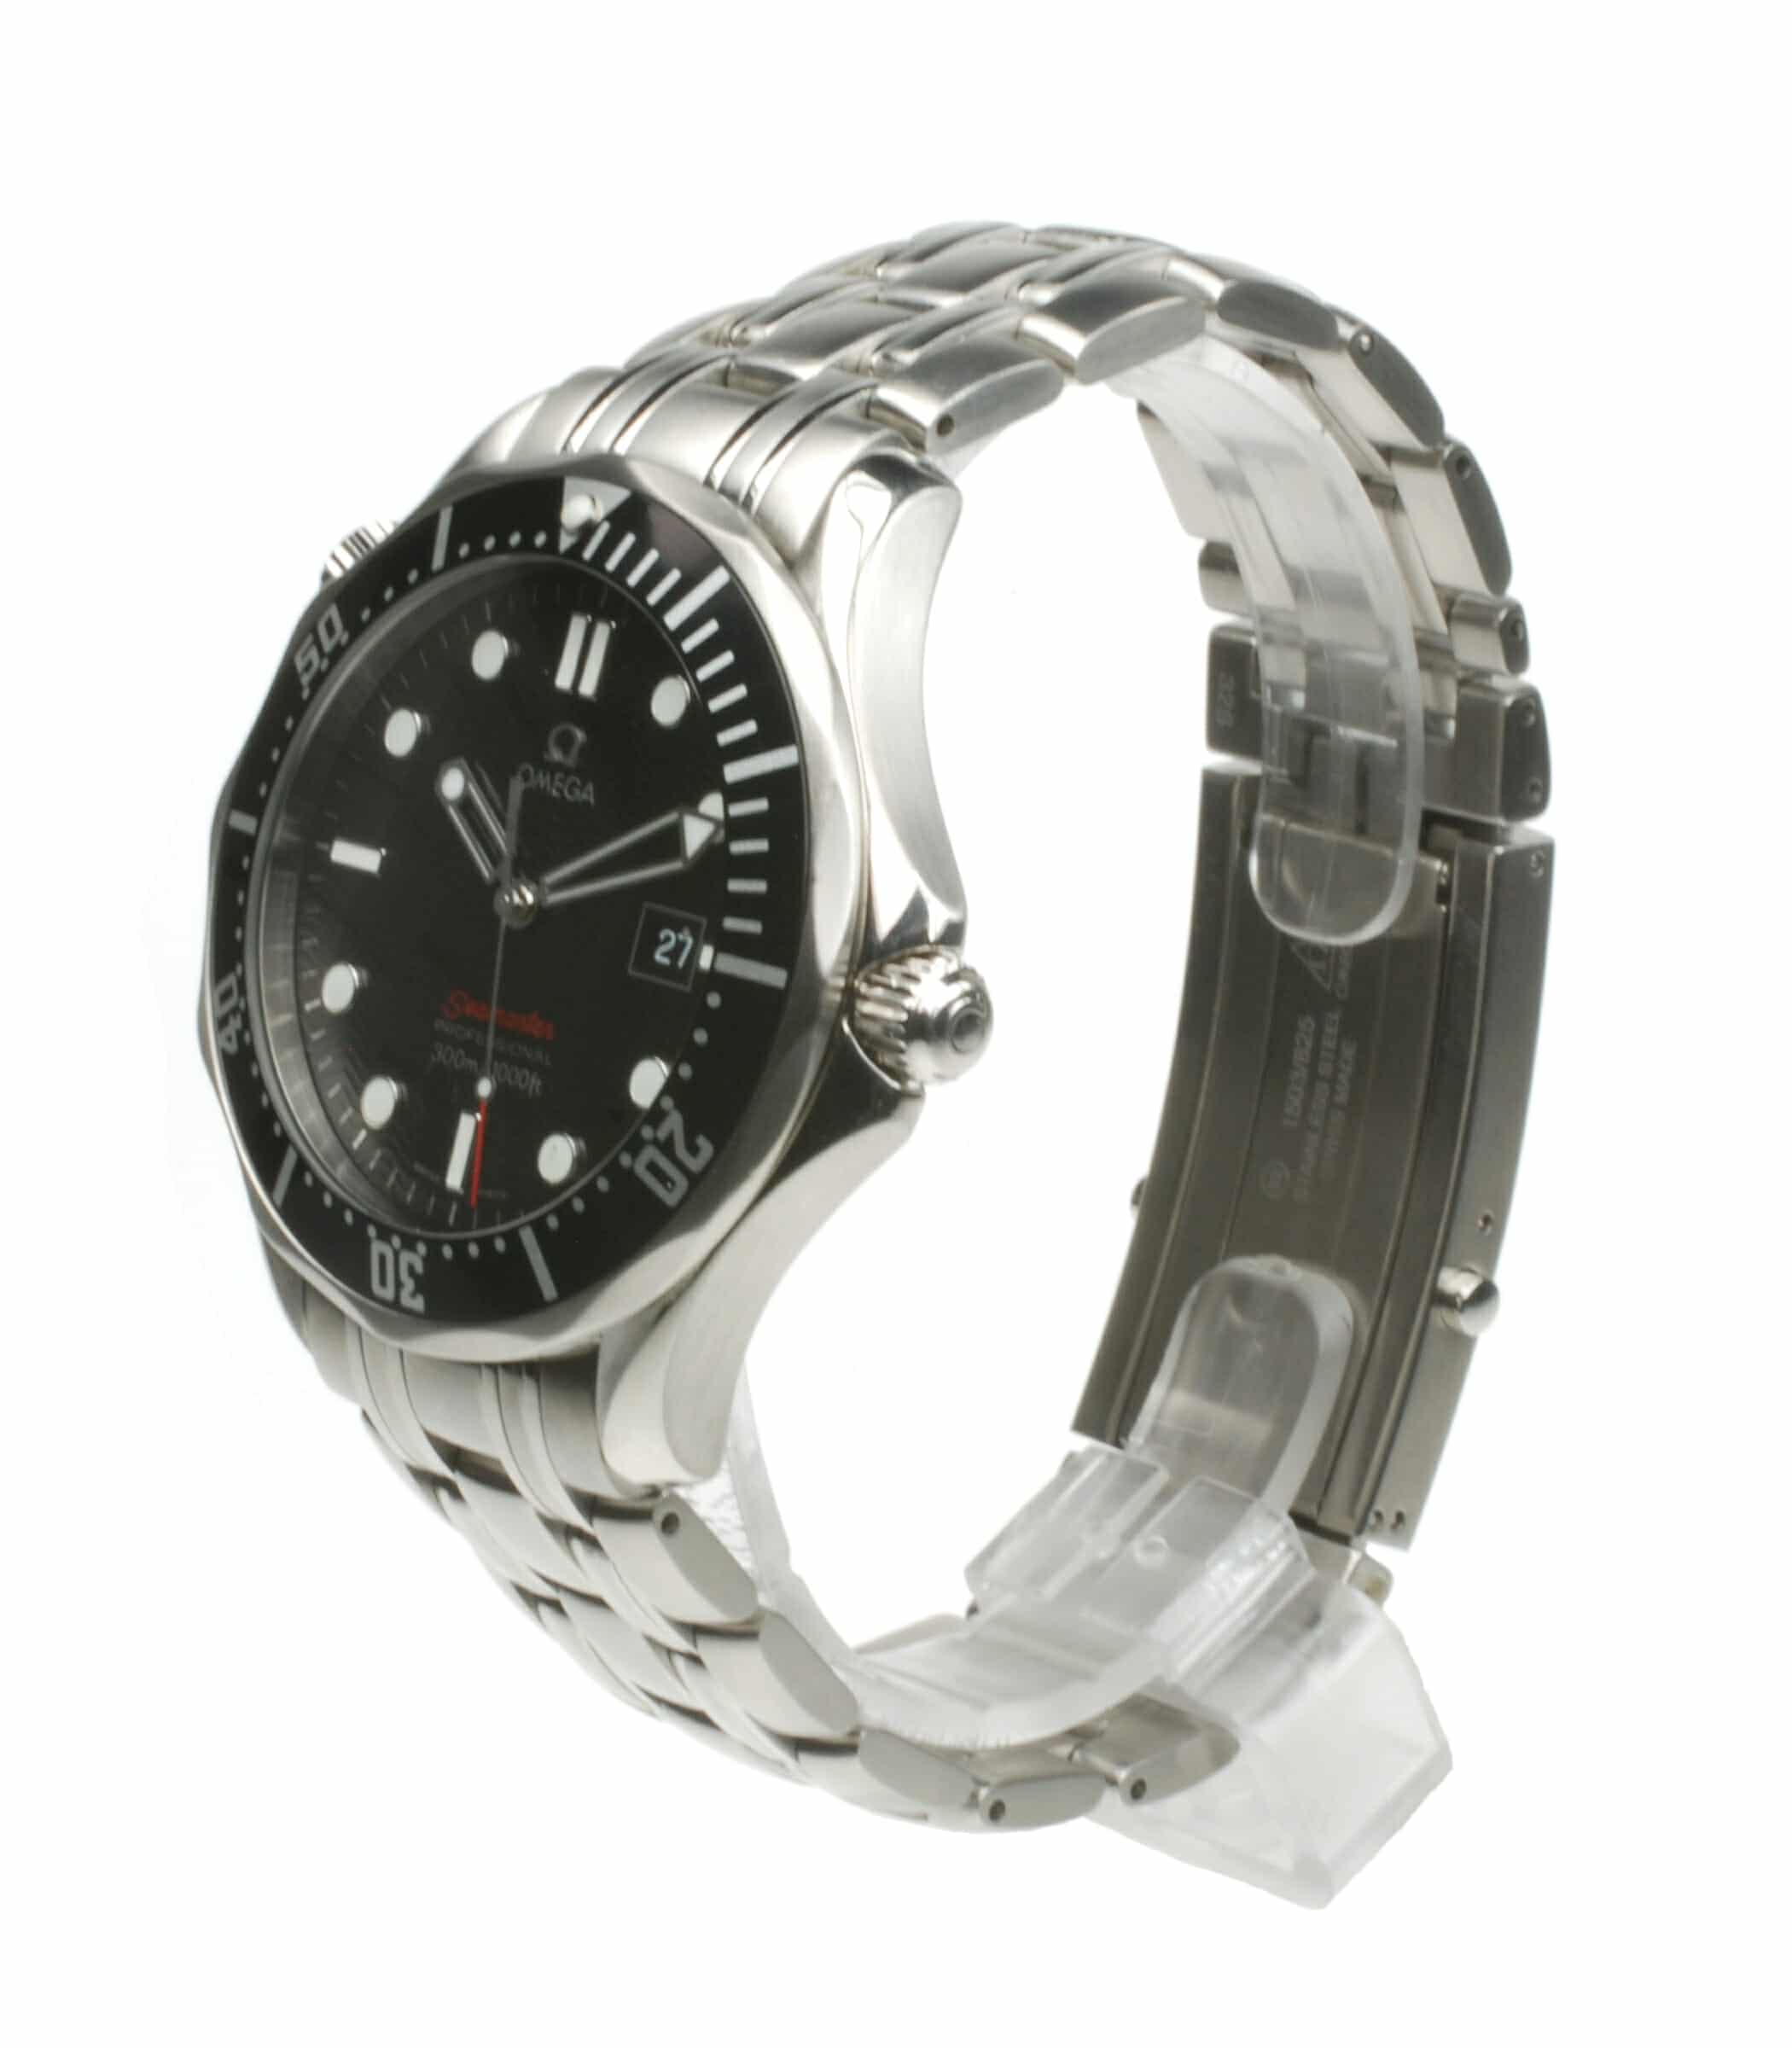 Omega Seamaster 300M 212.30.41.61.01.001 From 2010 Pre-Owned Watch With Papers